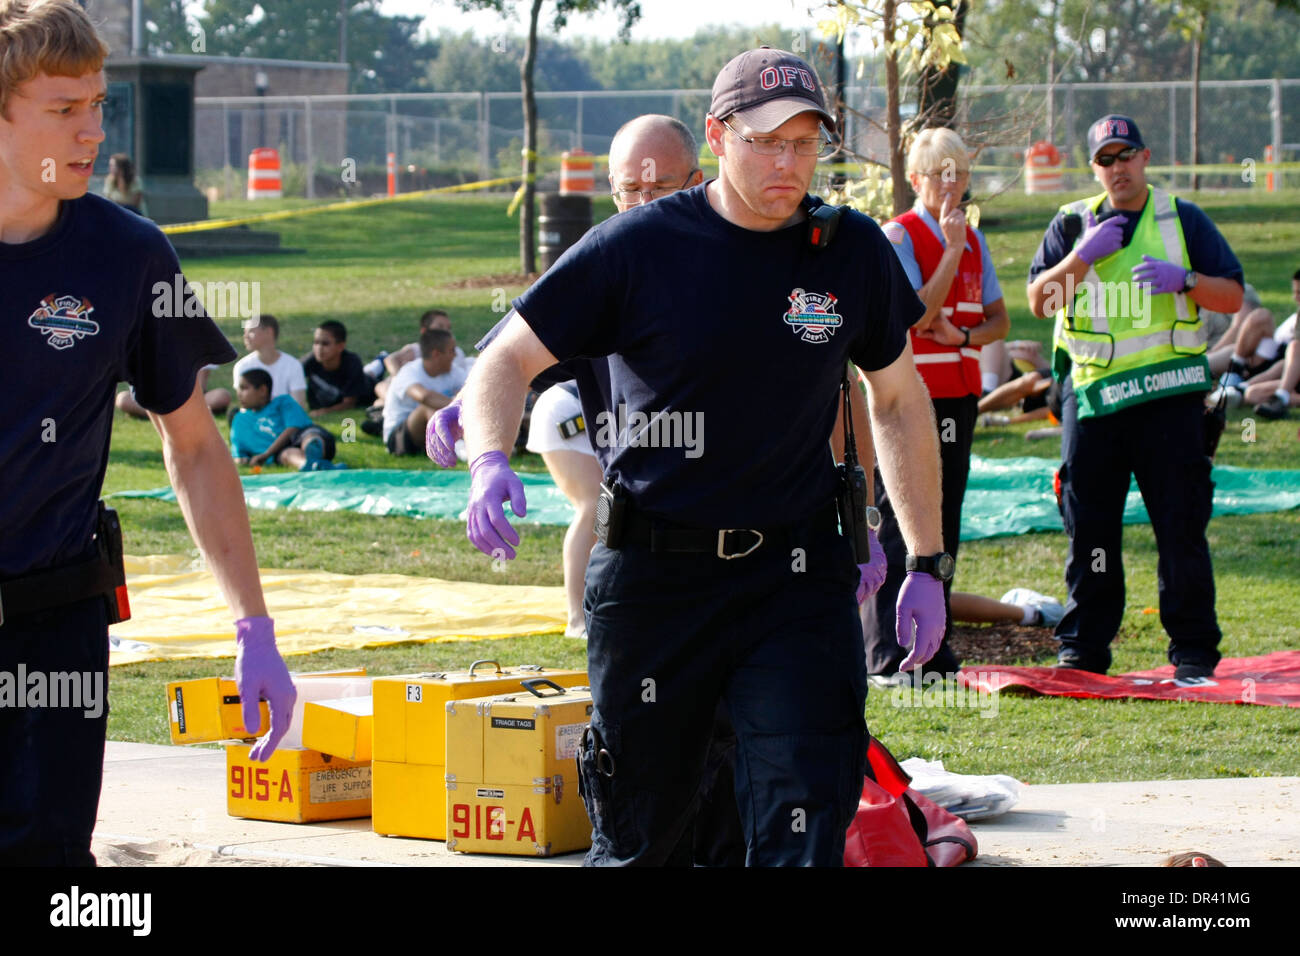 EMTs at a scene of a mass casualty incident - Stock Image